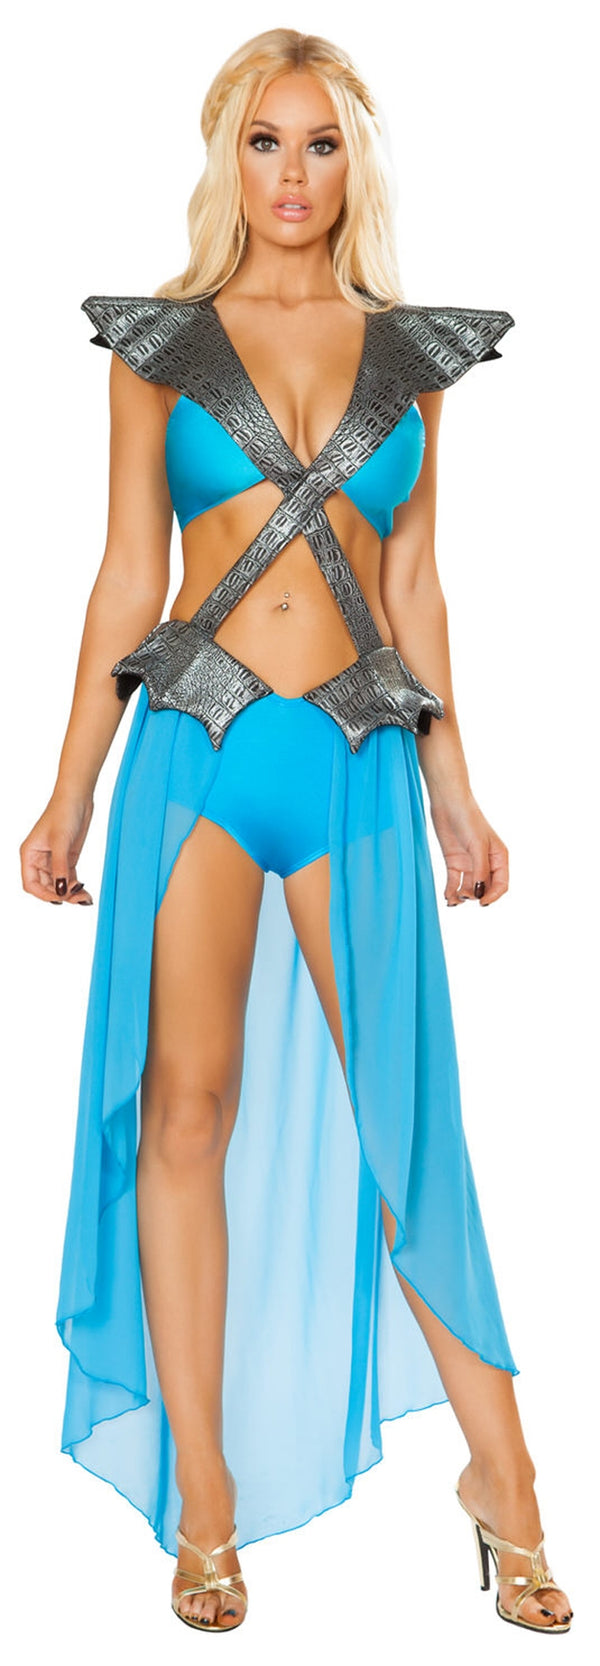 Mother of Dragons Costume RM-4787